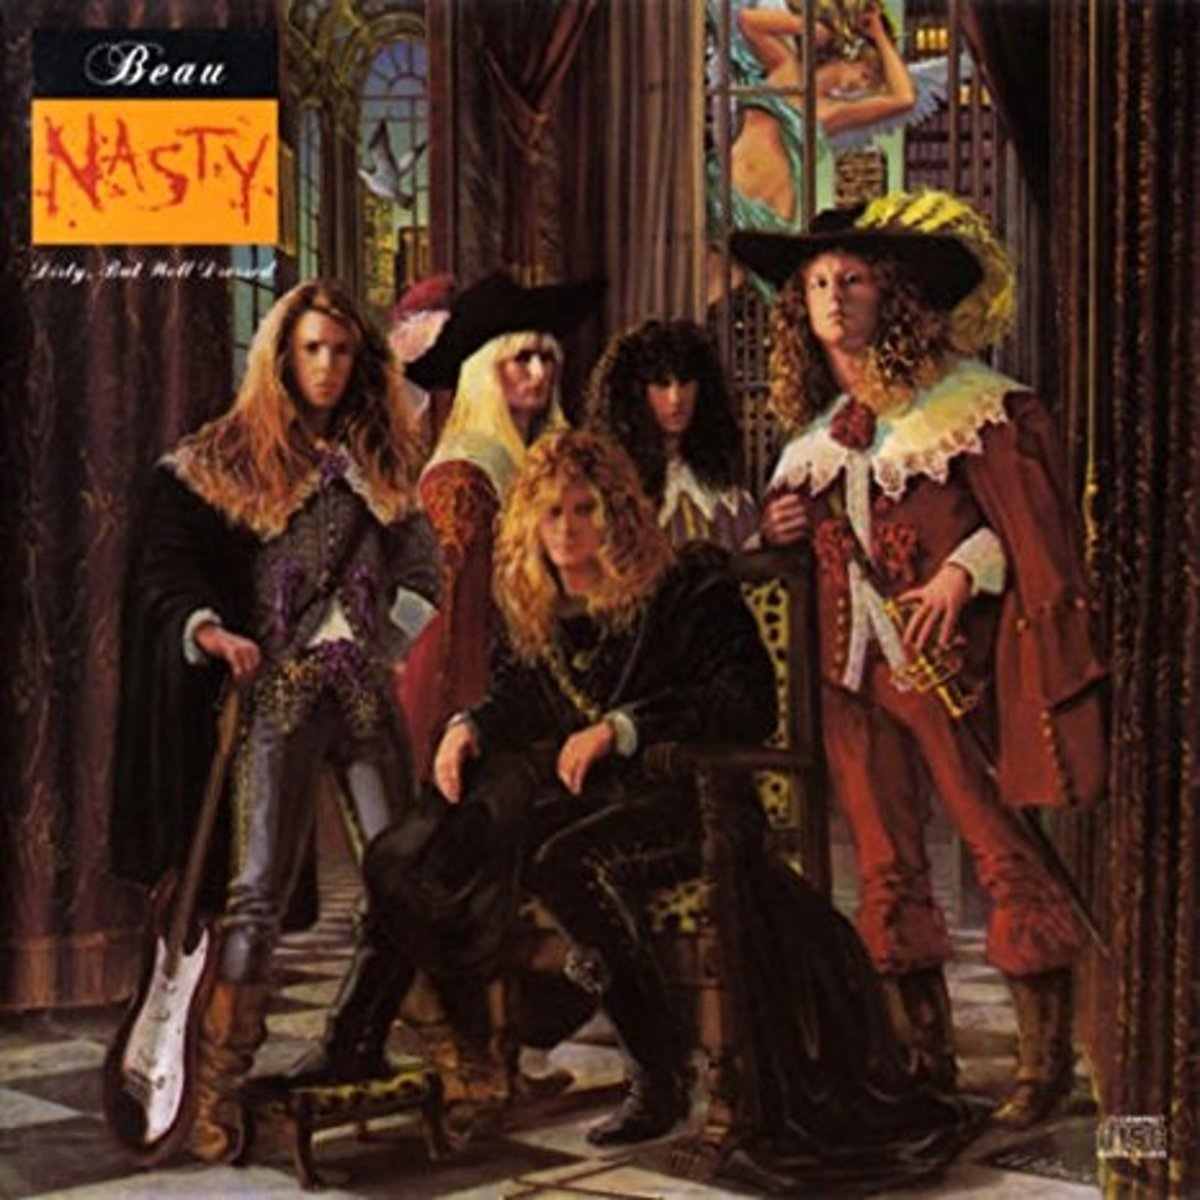 Forgotten Hard Rock Albums: Beau Nasty,